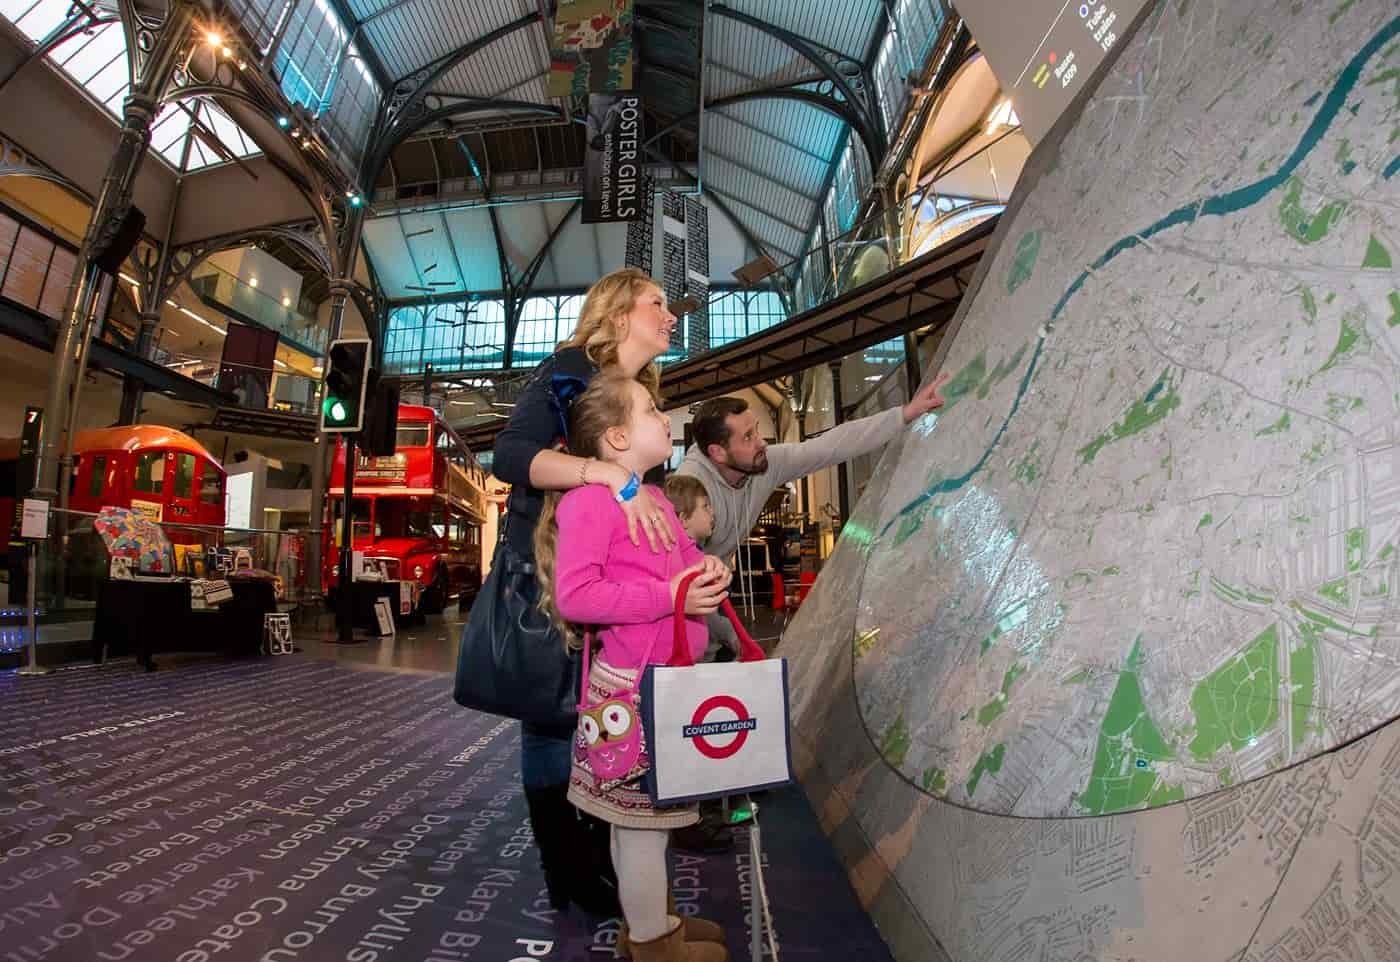 The London Transport Museum in Covent Garden has some special plans for kids this Christmas.